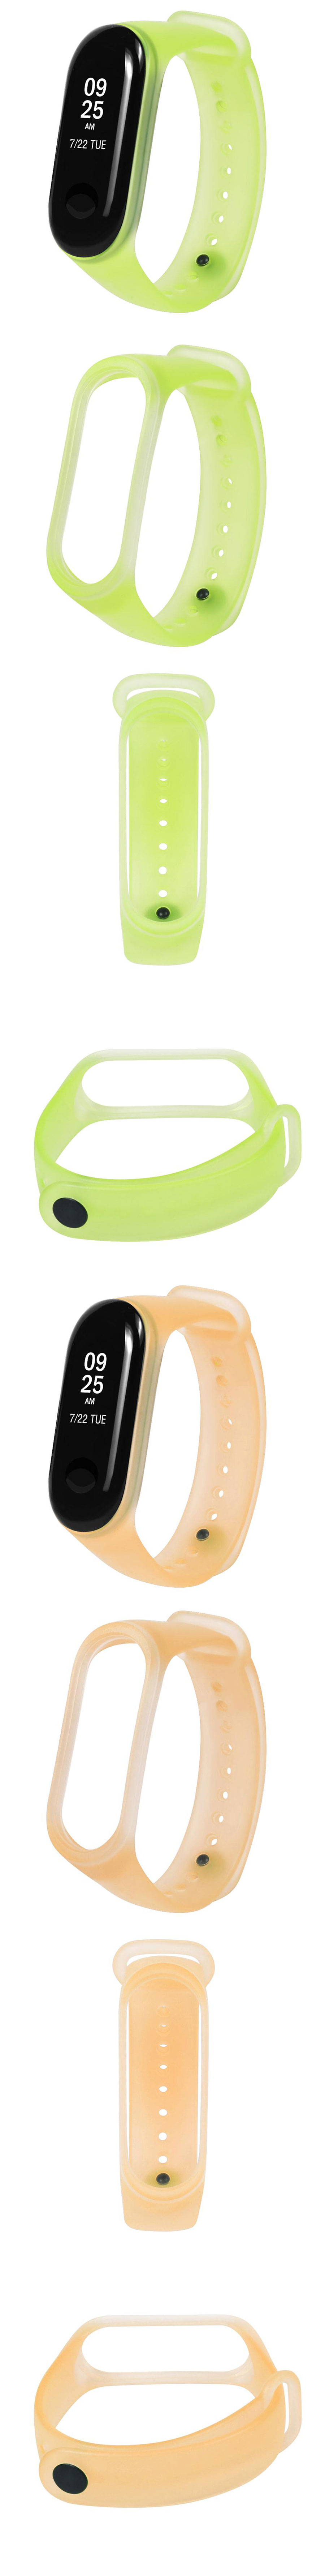 Bakeey Jelly Translucent Colorful TPE Watch Band Strap Replacement for Xiaomi Miband 3